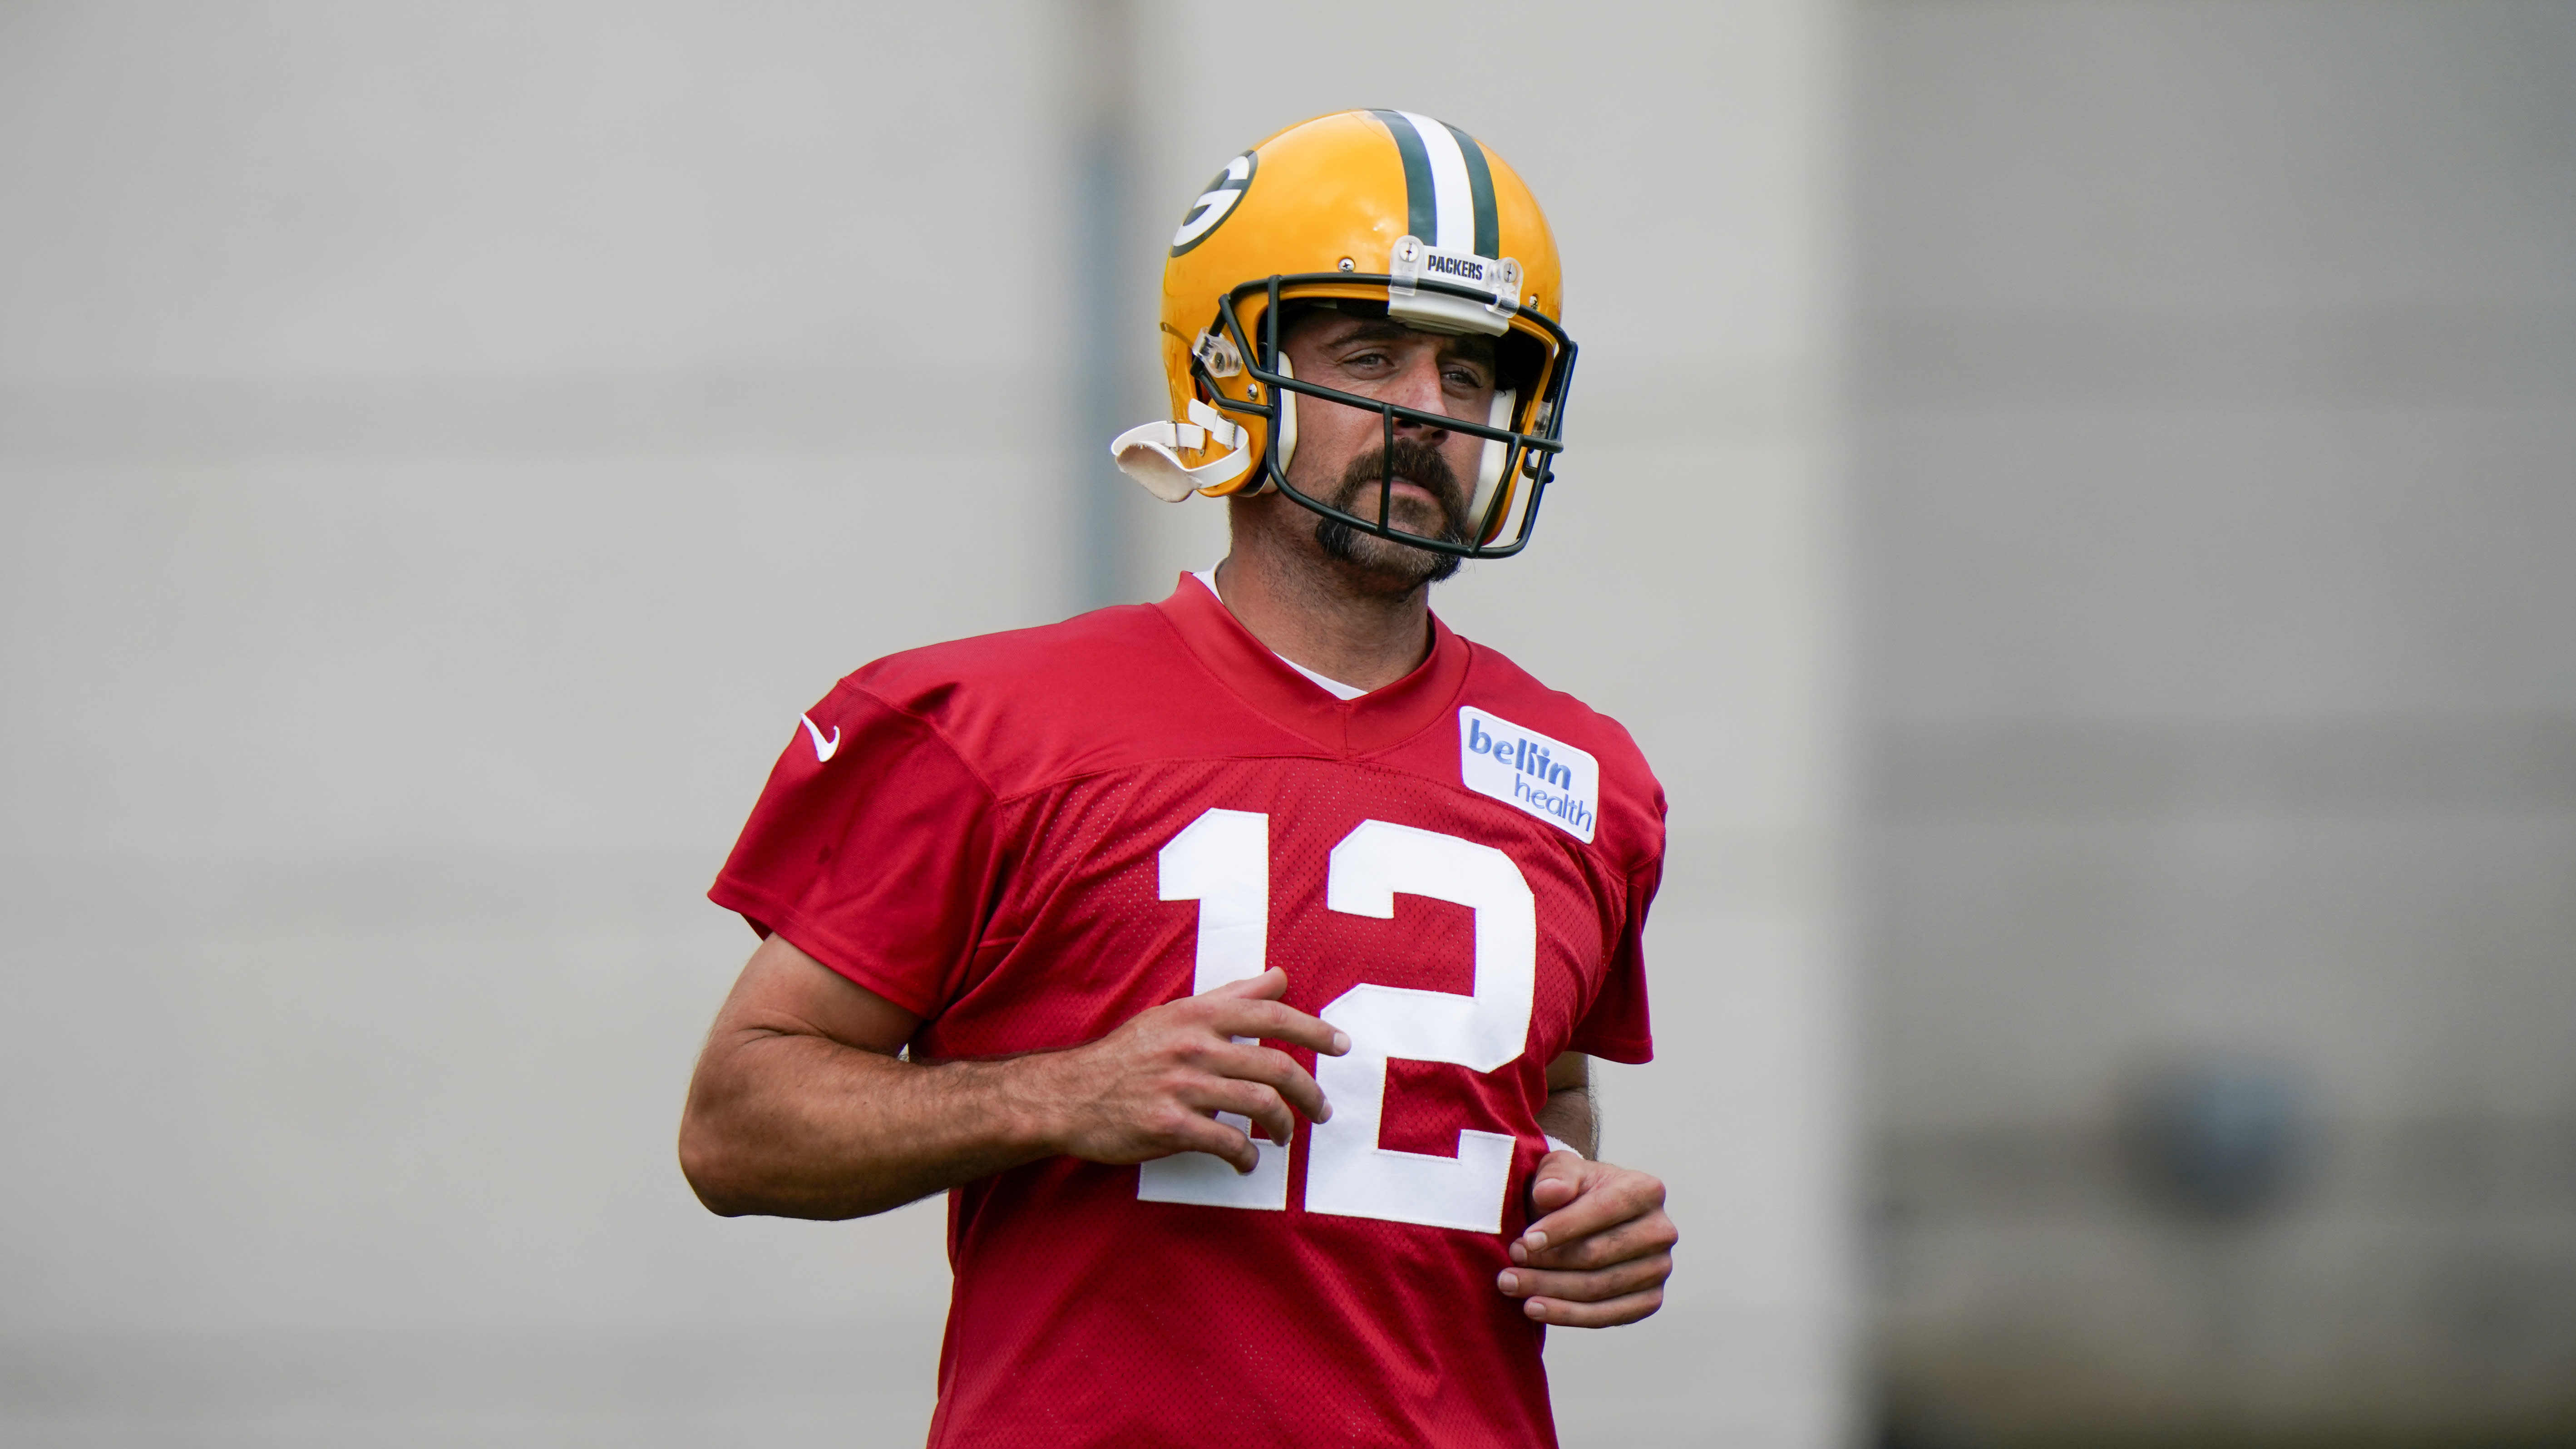 2020 Fantasy Football: Players to start or sit in Week 1